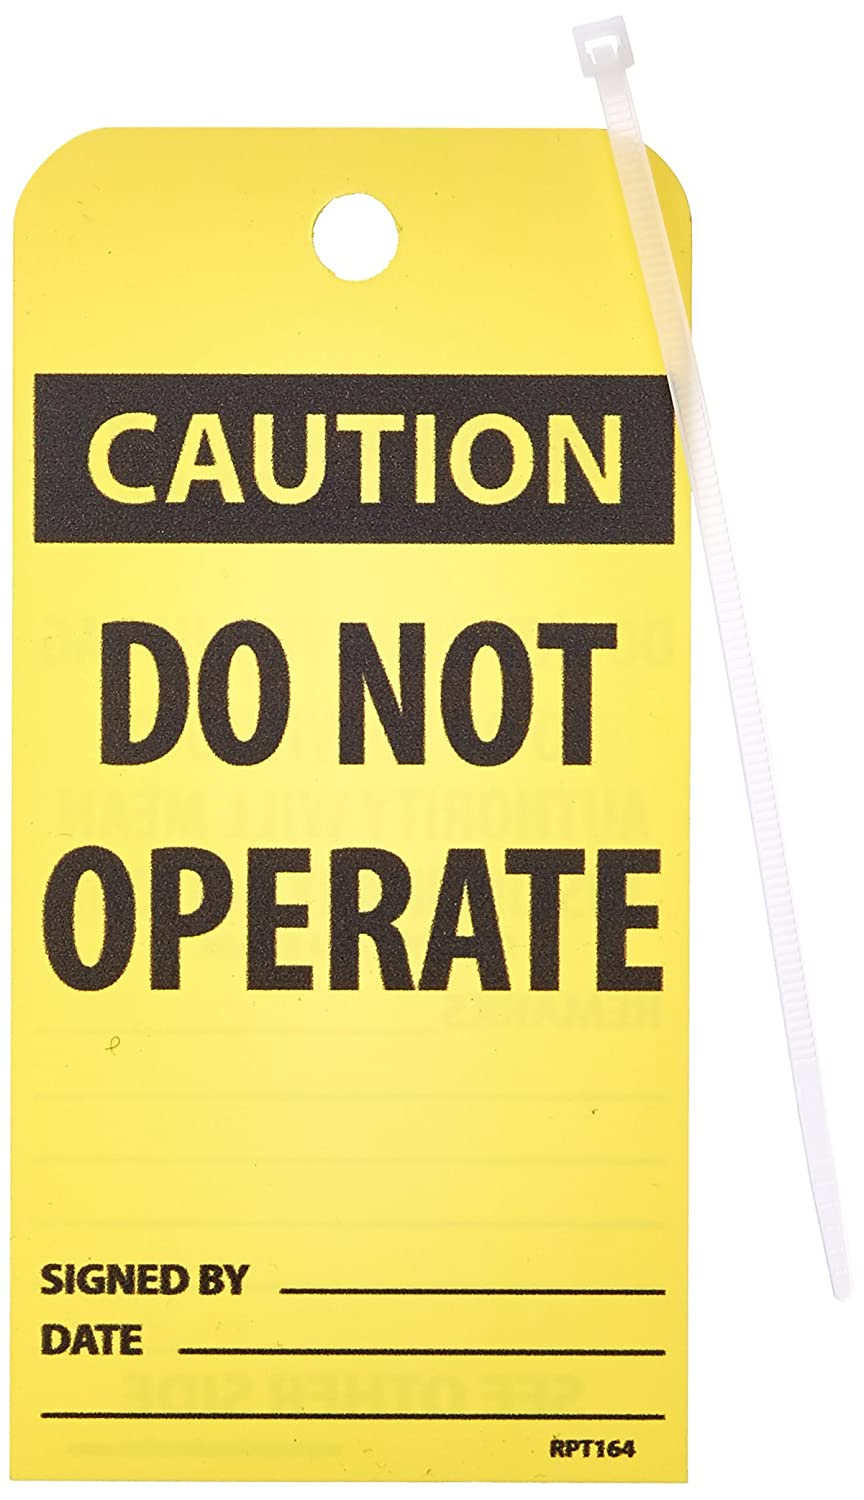 3 Length DO NOT OPERATE Accident Prevention Tag 6 Height Pack of 25 Black on Yellow Unrippable Vinyl NMC RPT164CAUTION